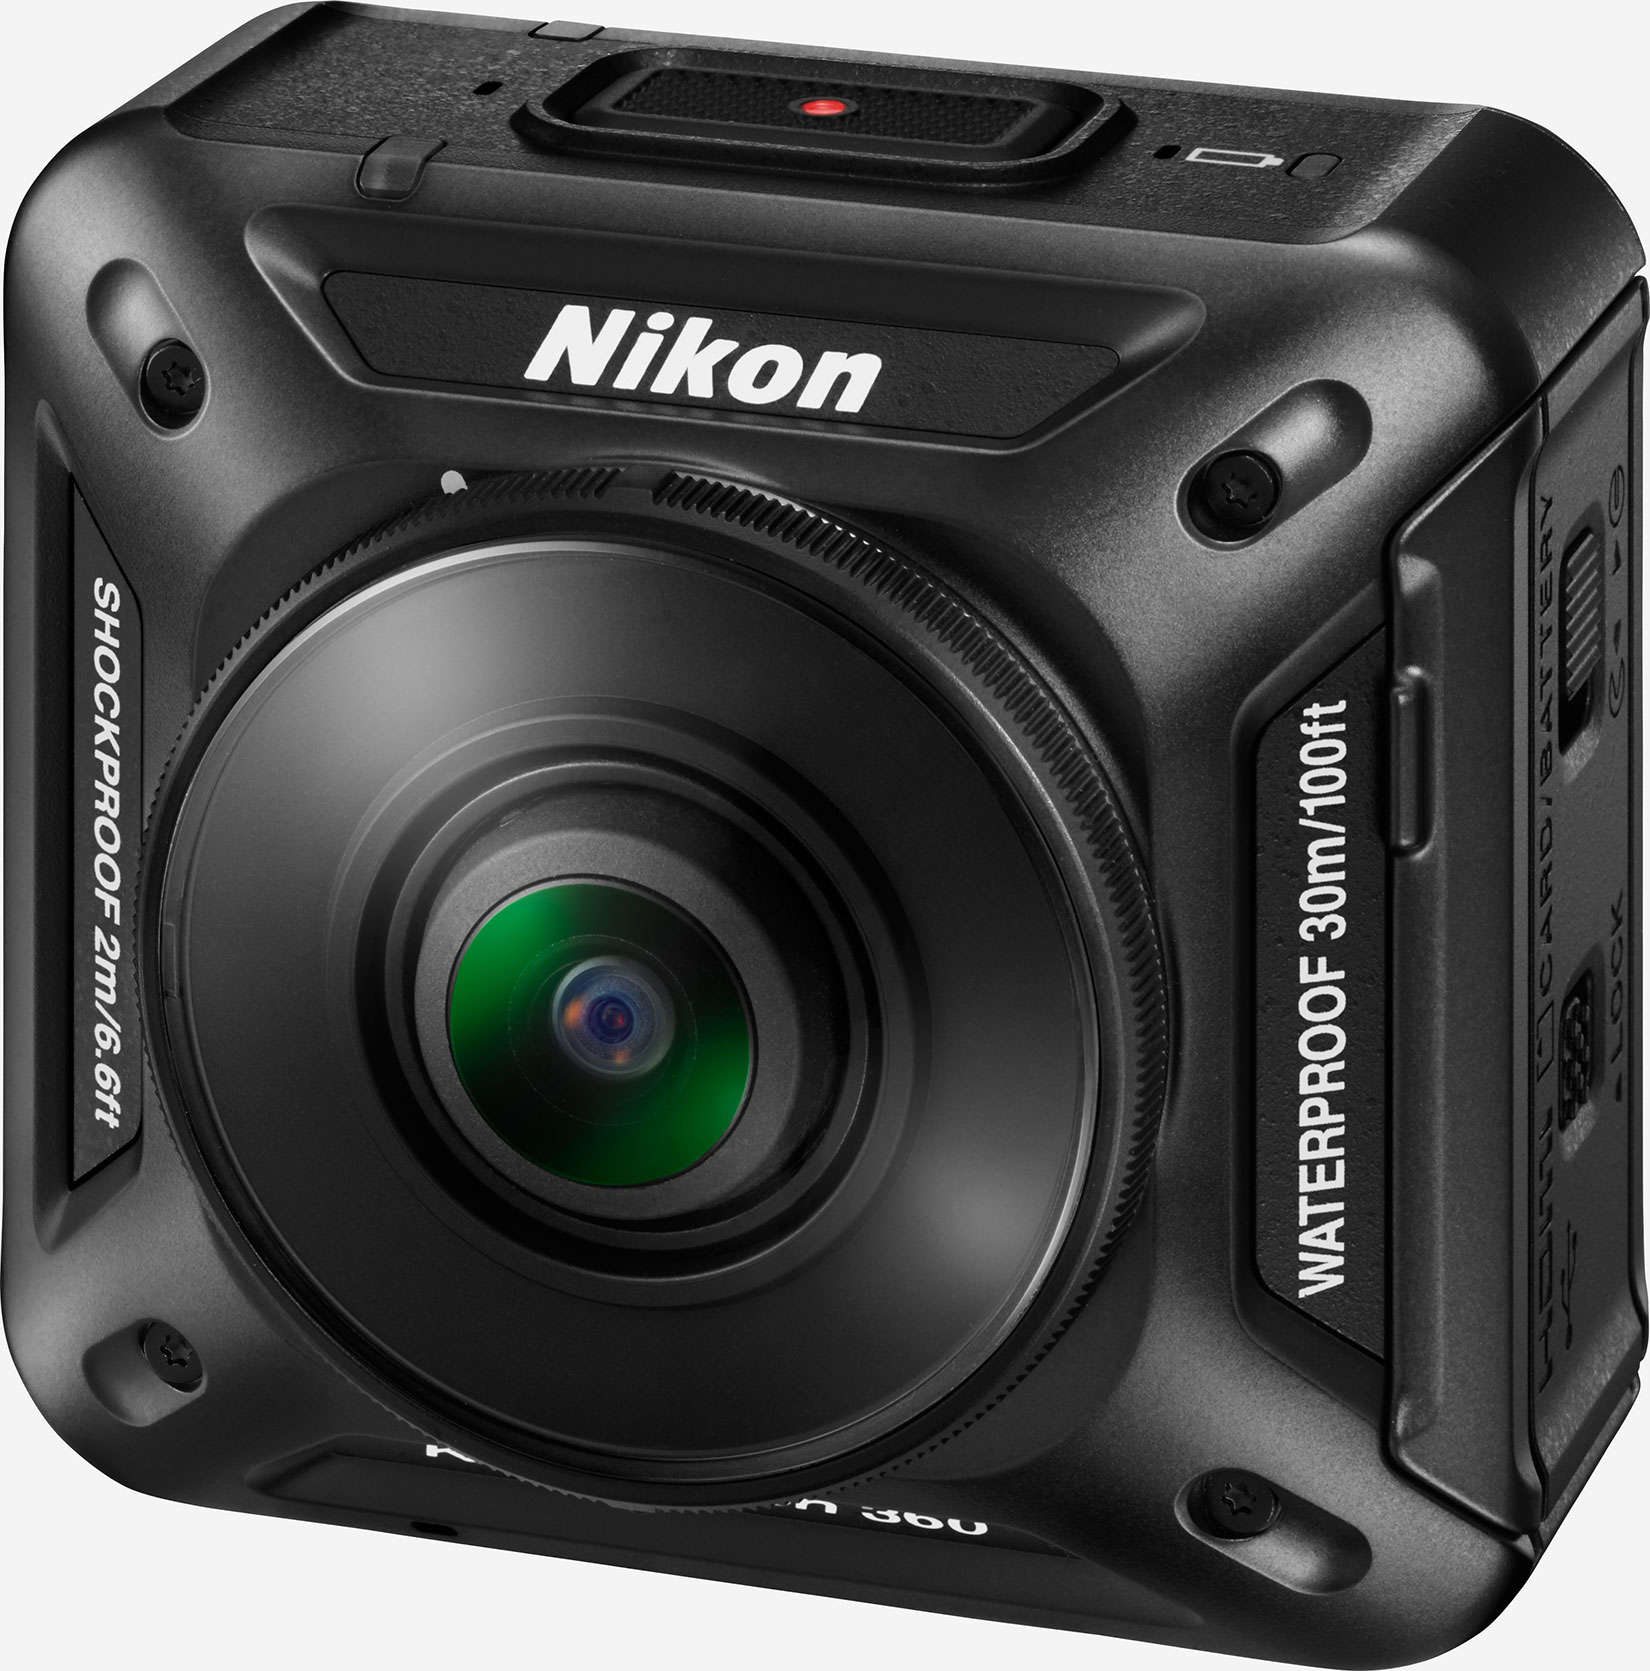 The Nikon Key Mission 360 is on a mission to compete with action camera industry leader GoPro.